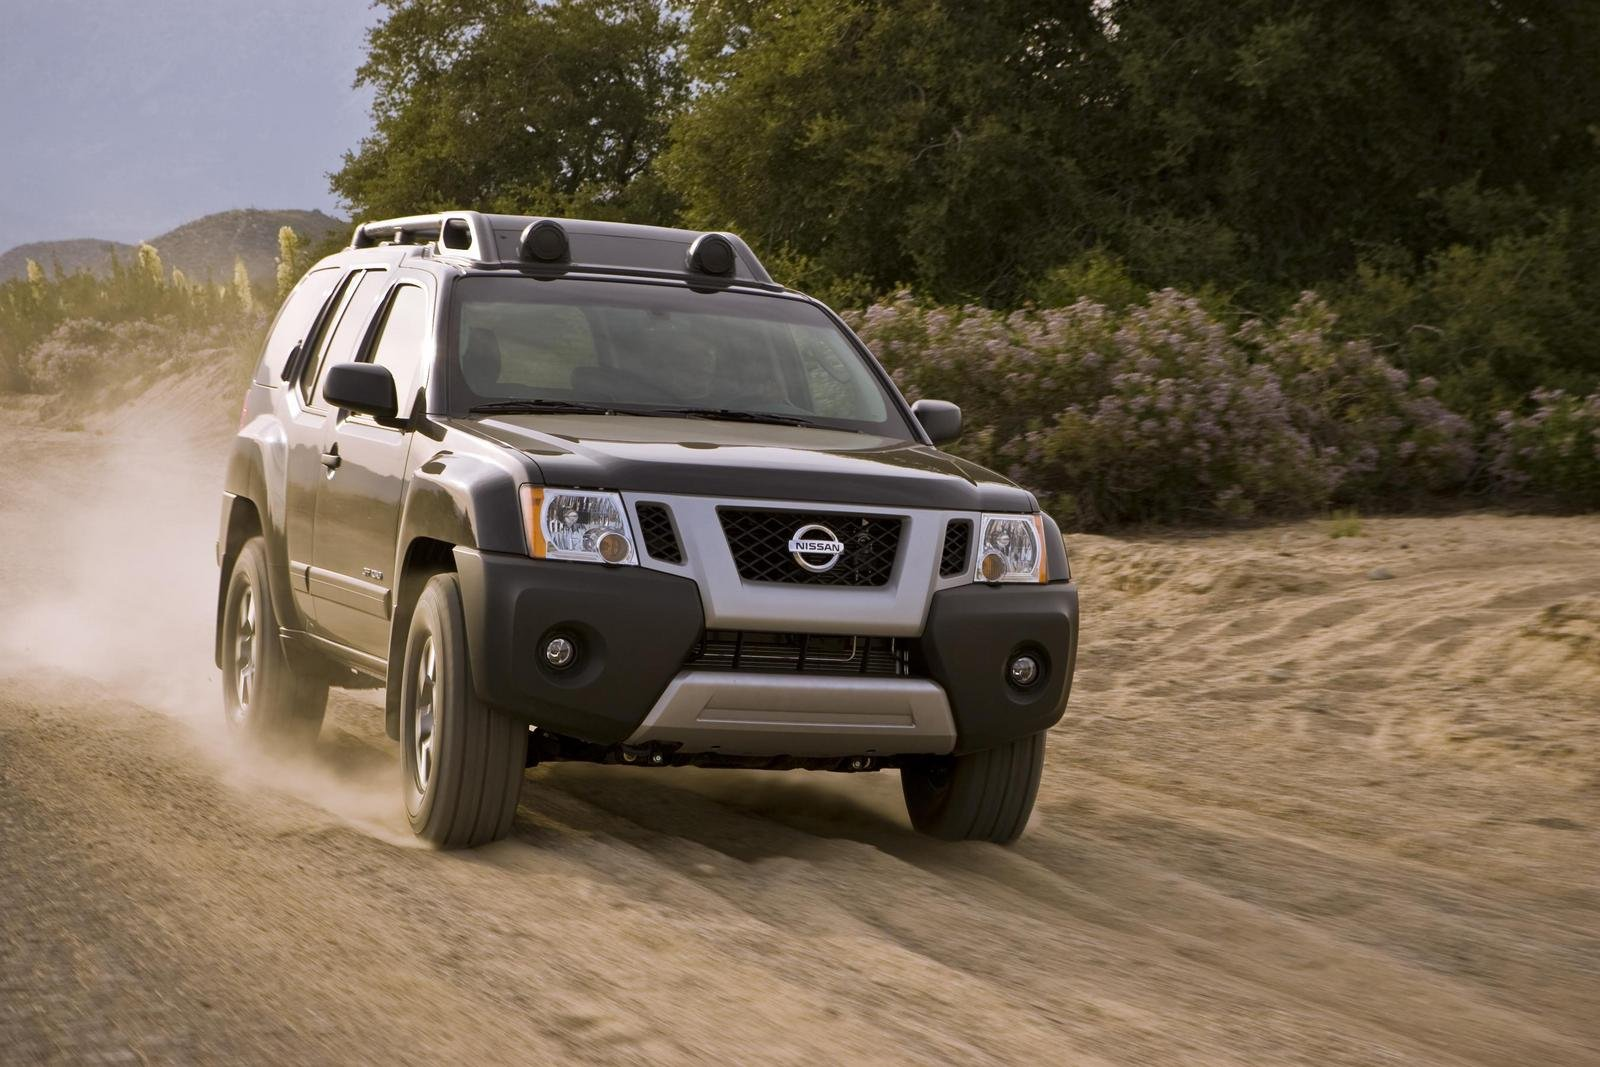 2009 nissan xterra review - top speed